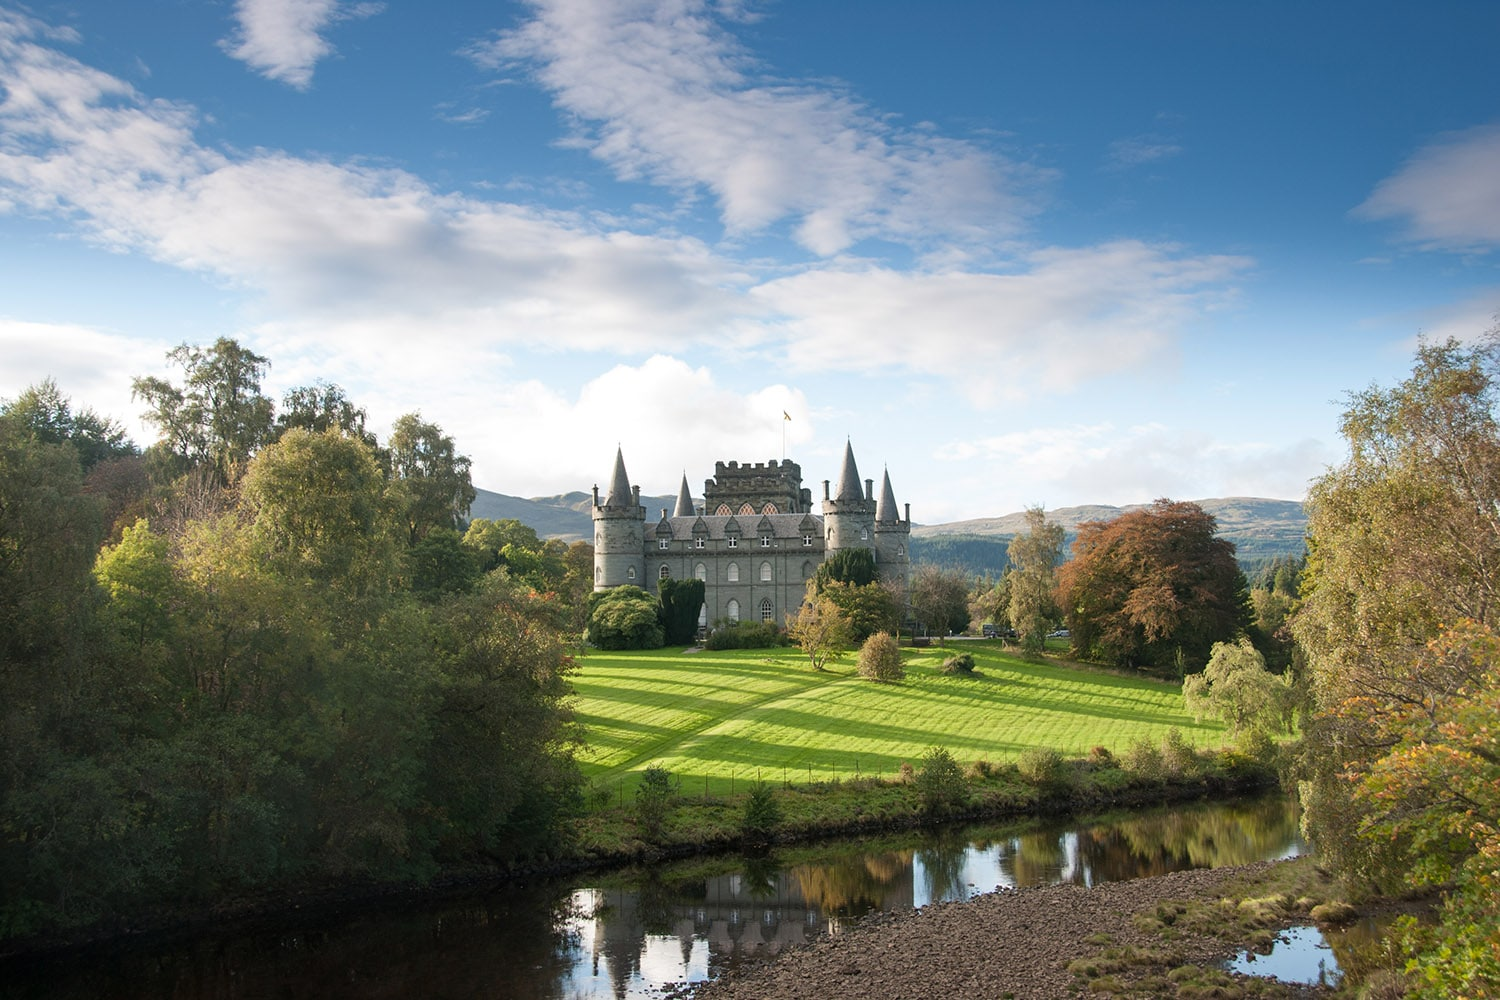 Inverary Castle is a highlight our of castle maniacs tour - a tour of Scottish castles